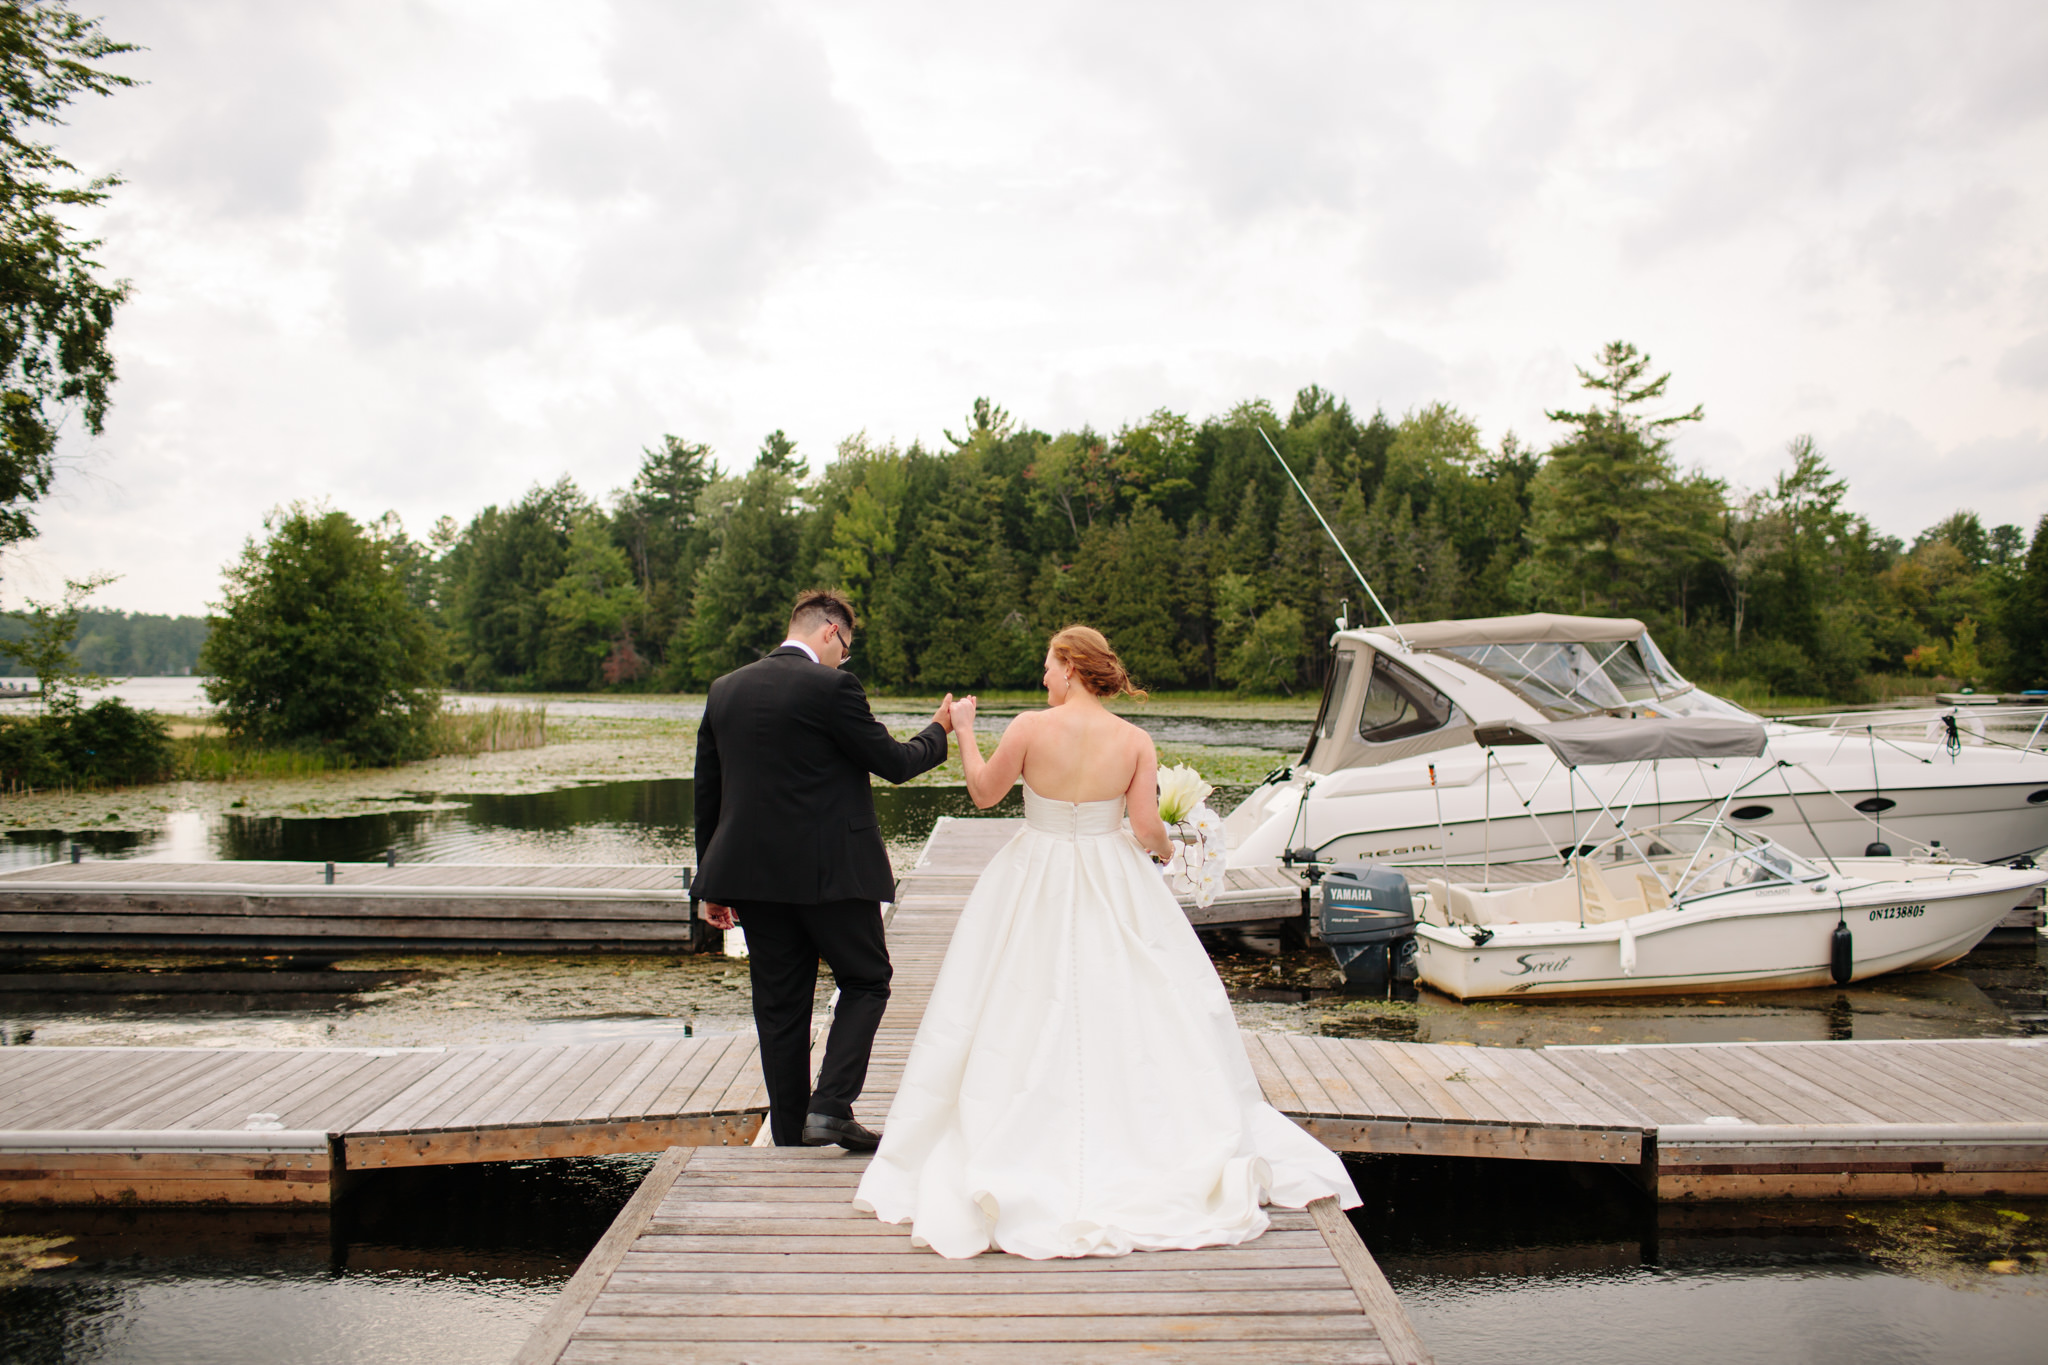 bride and groom walk down the dock after getting married